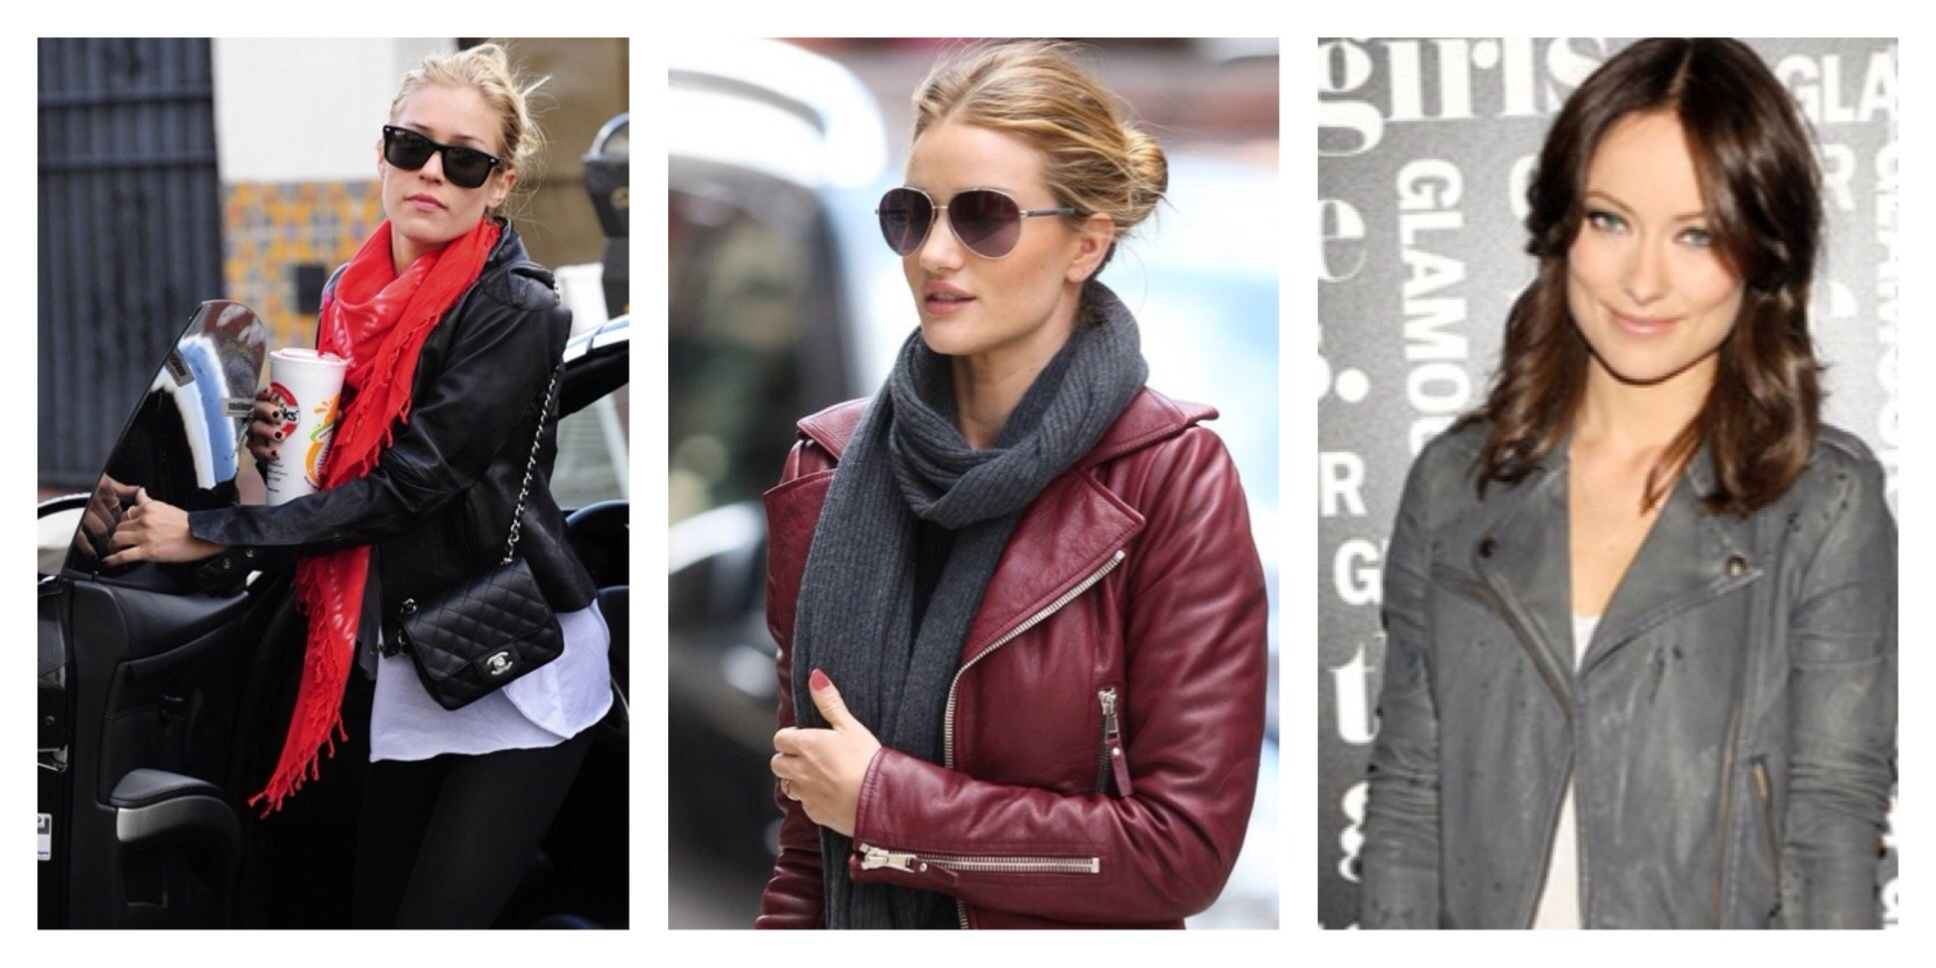 Kristen Cavallari, Rosie Huntington-Whiteley & Olvia Wilde in killer moto jackets.